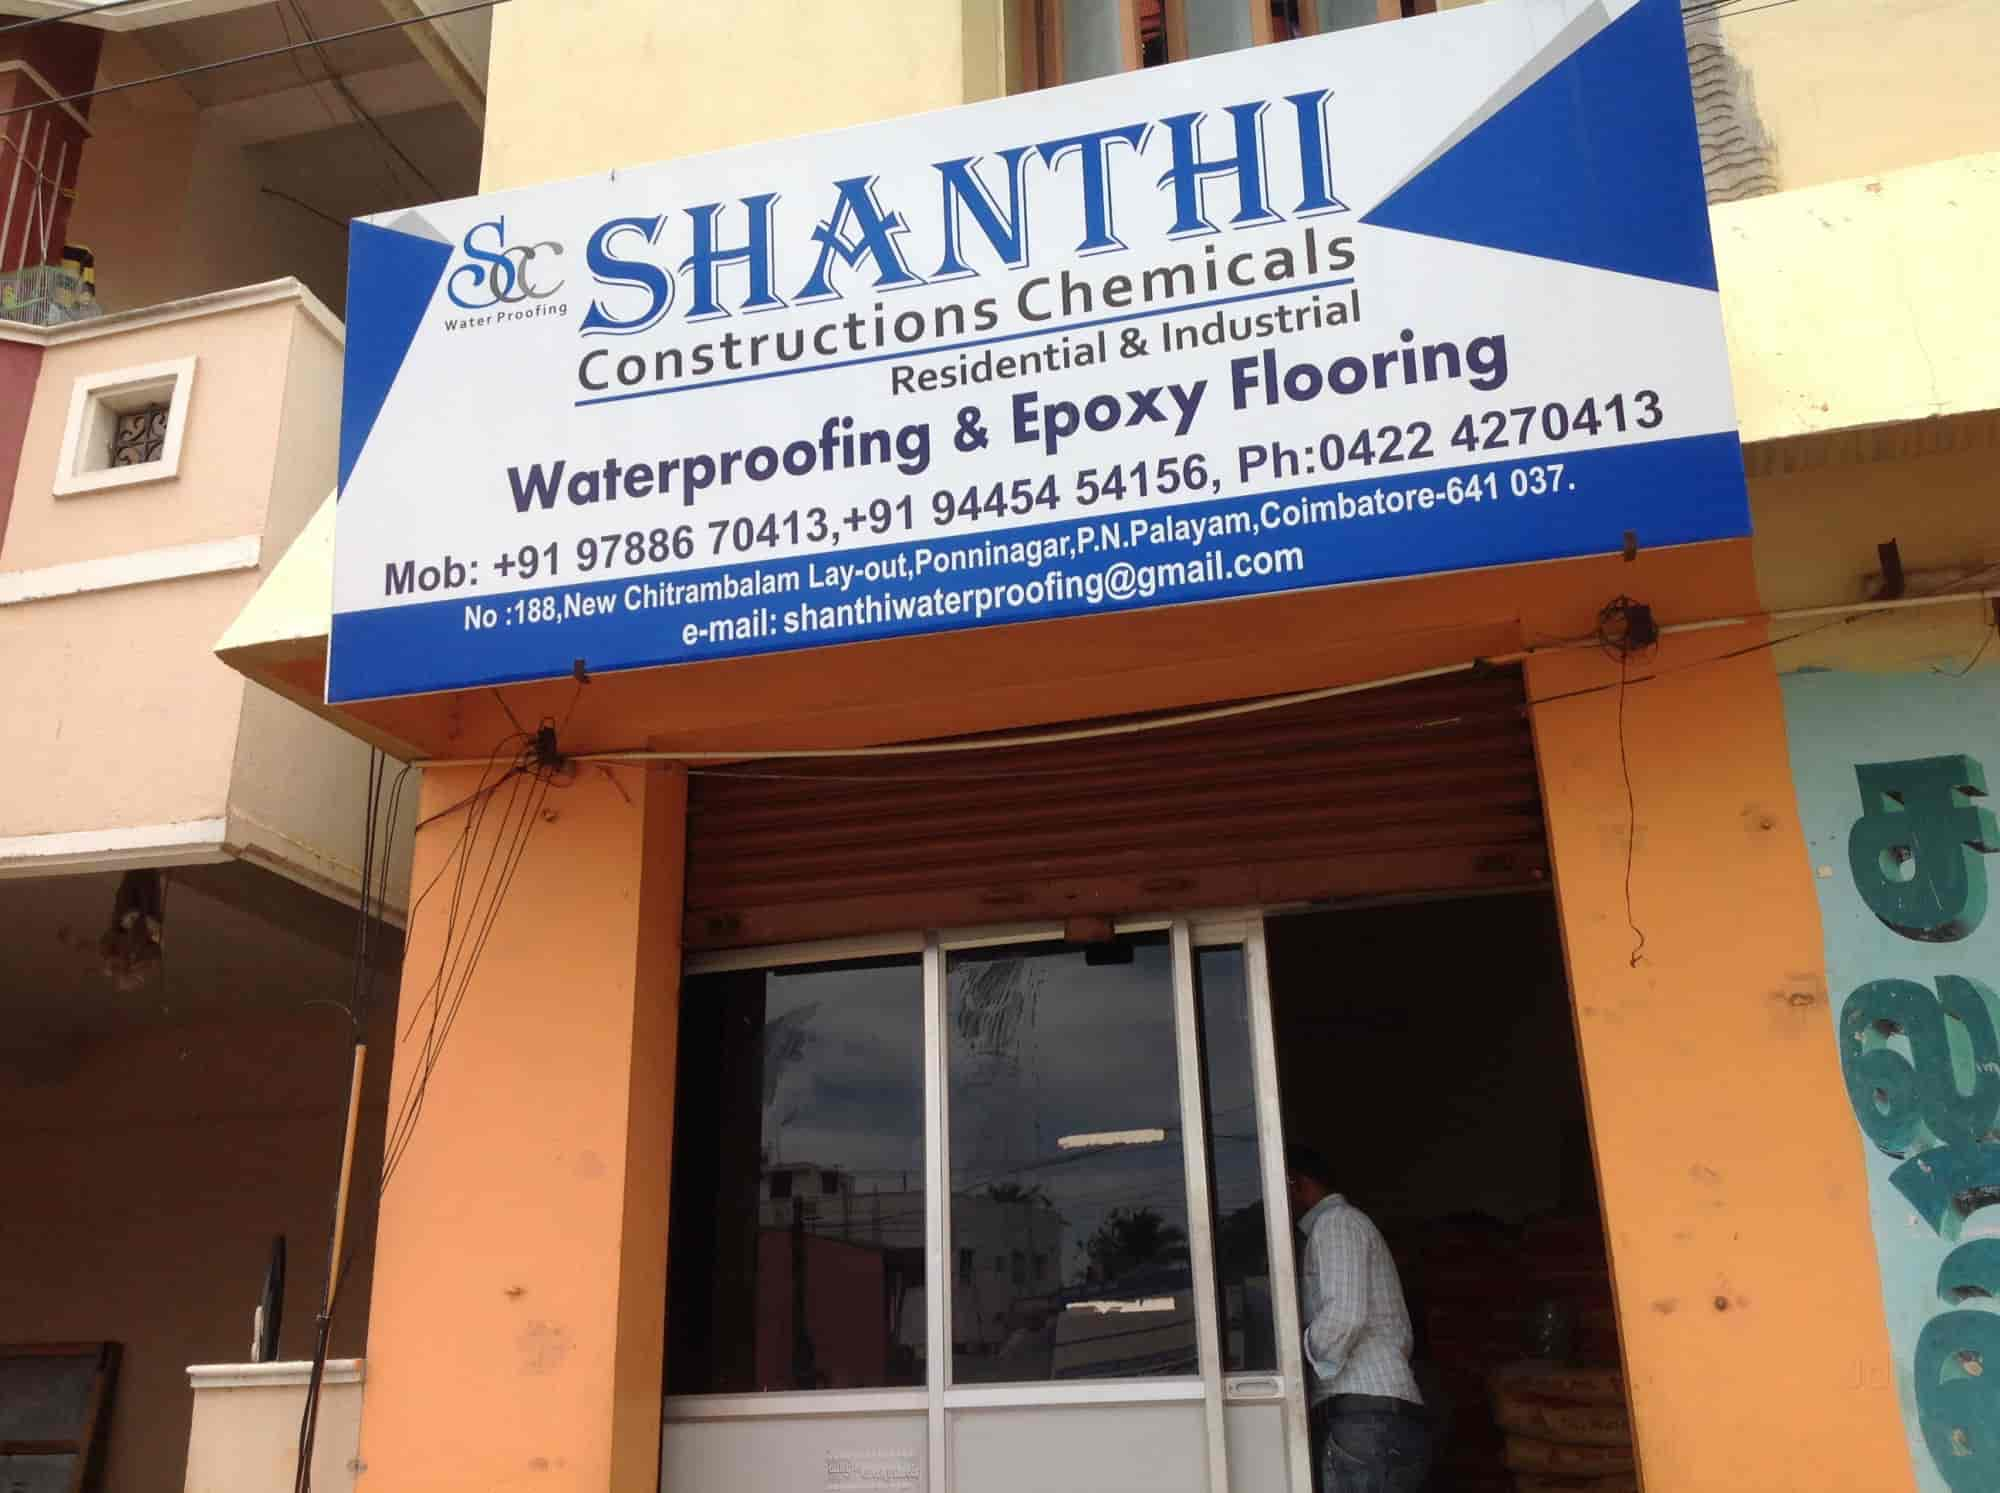 Shanthi Constructions Chemicals & Waterproofing, Near sbi Atm